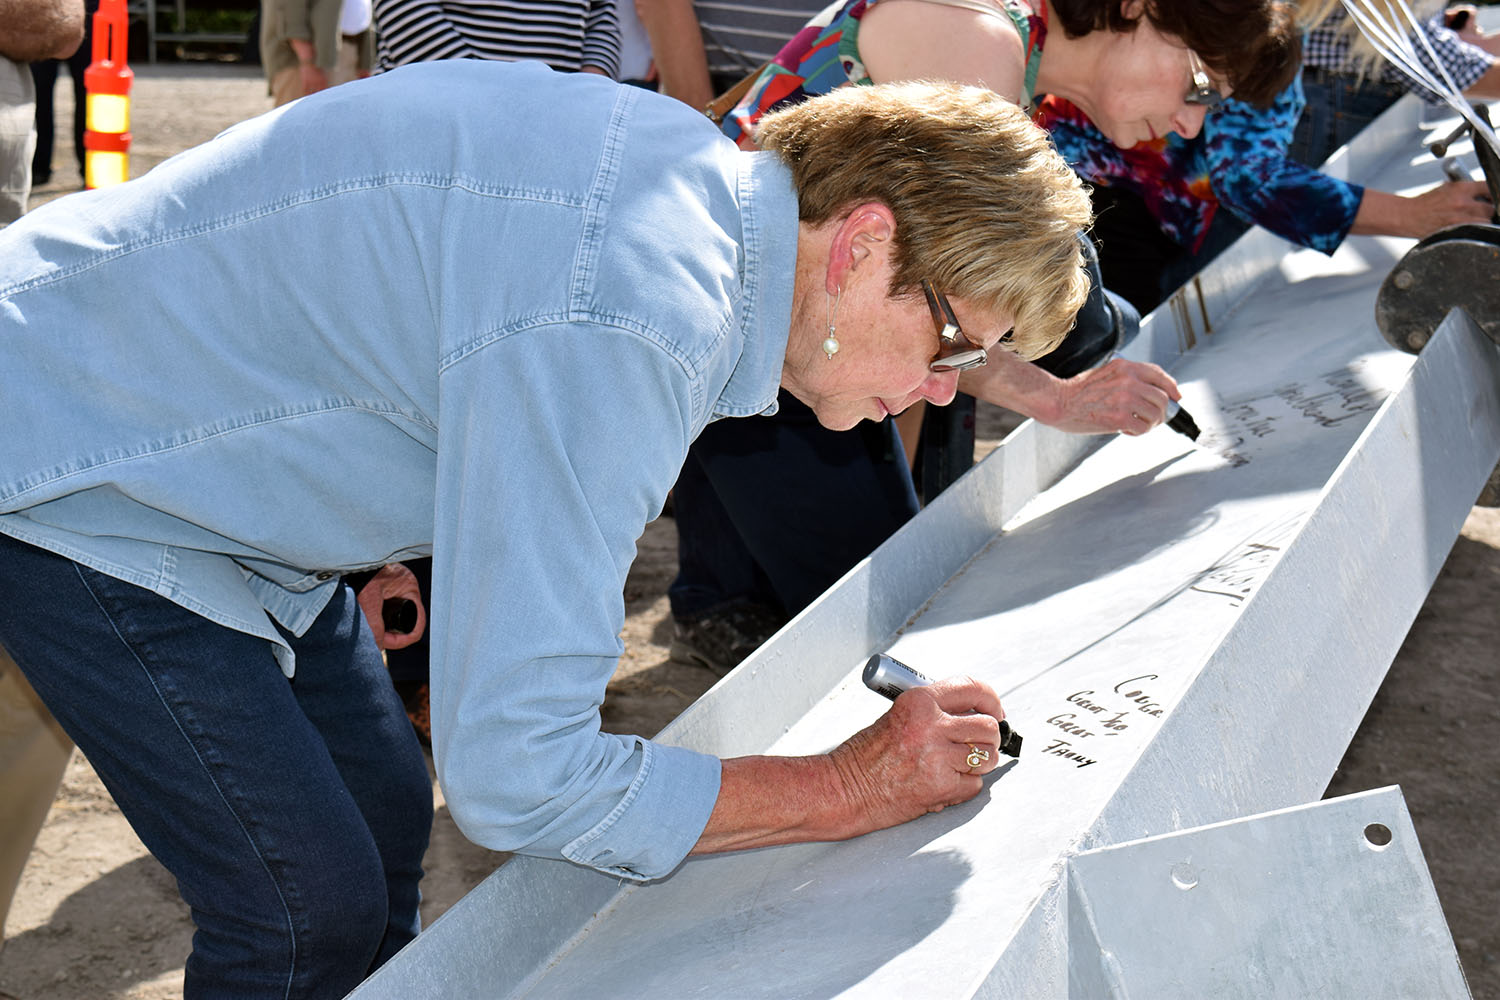 Roche Platinum Club member Suzy Foster signing the beam